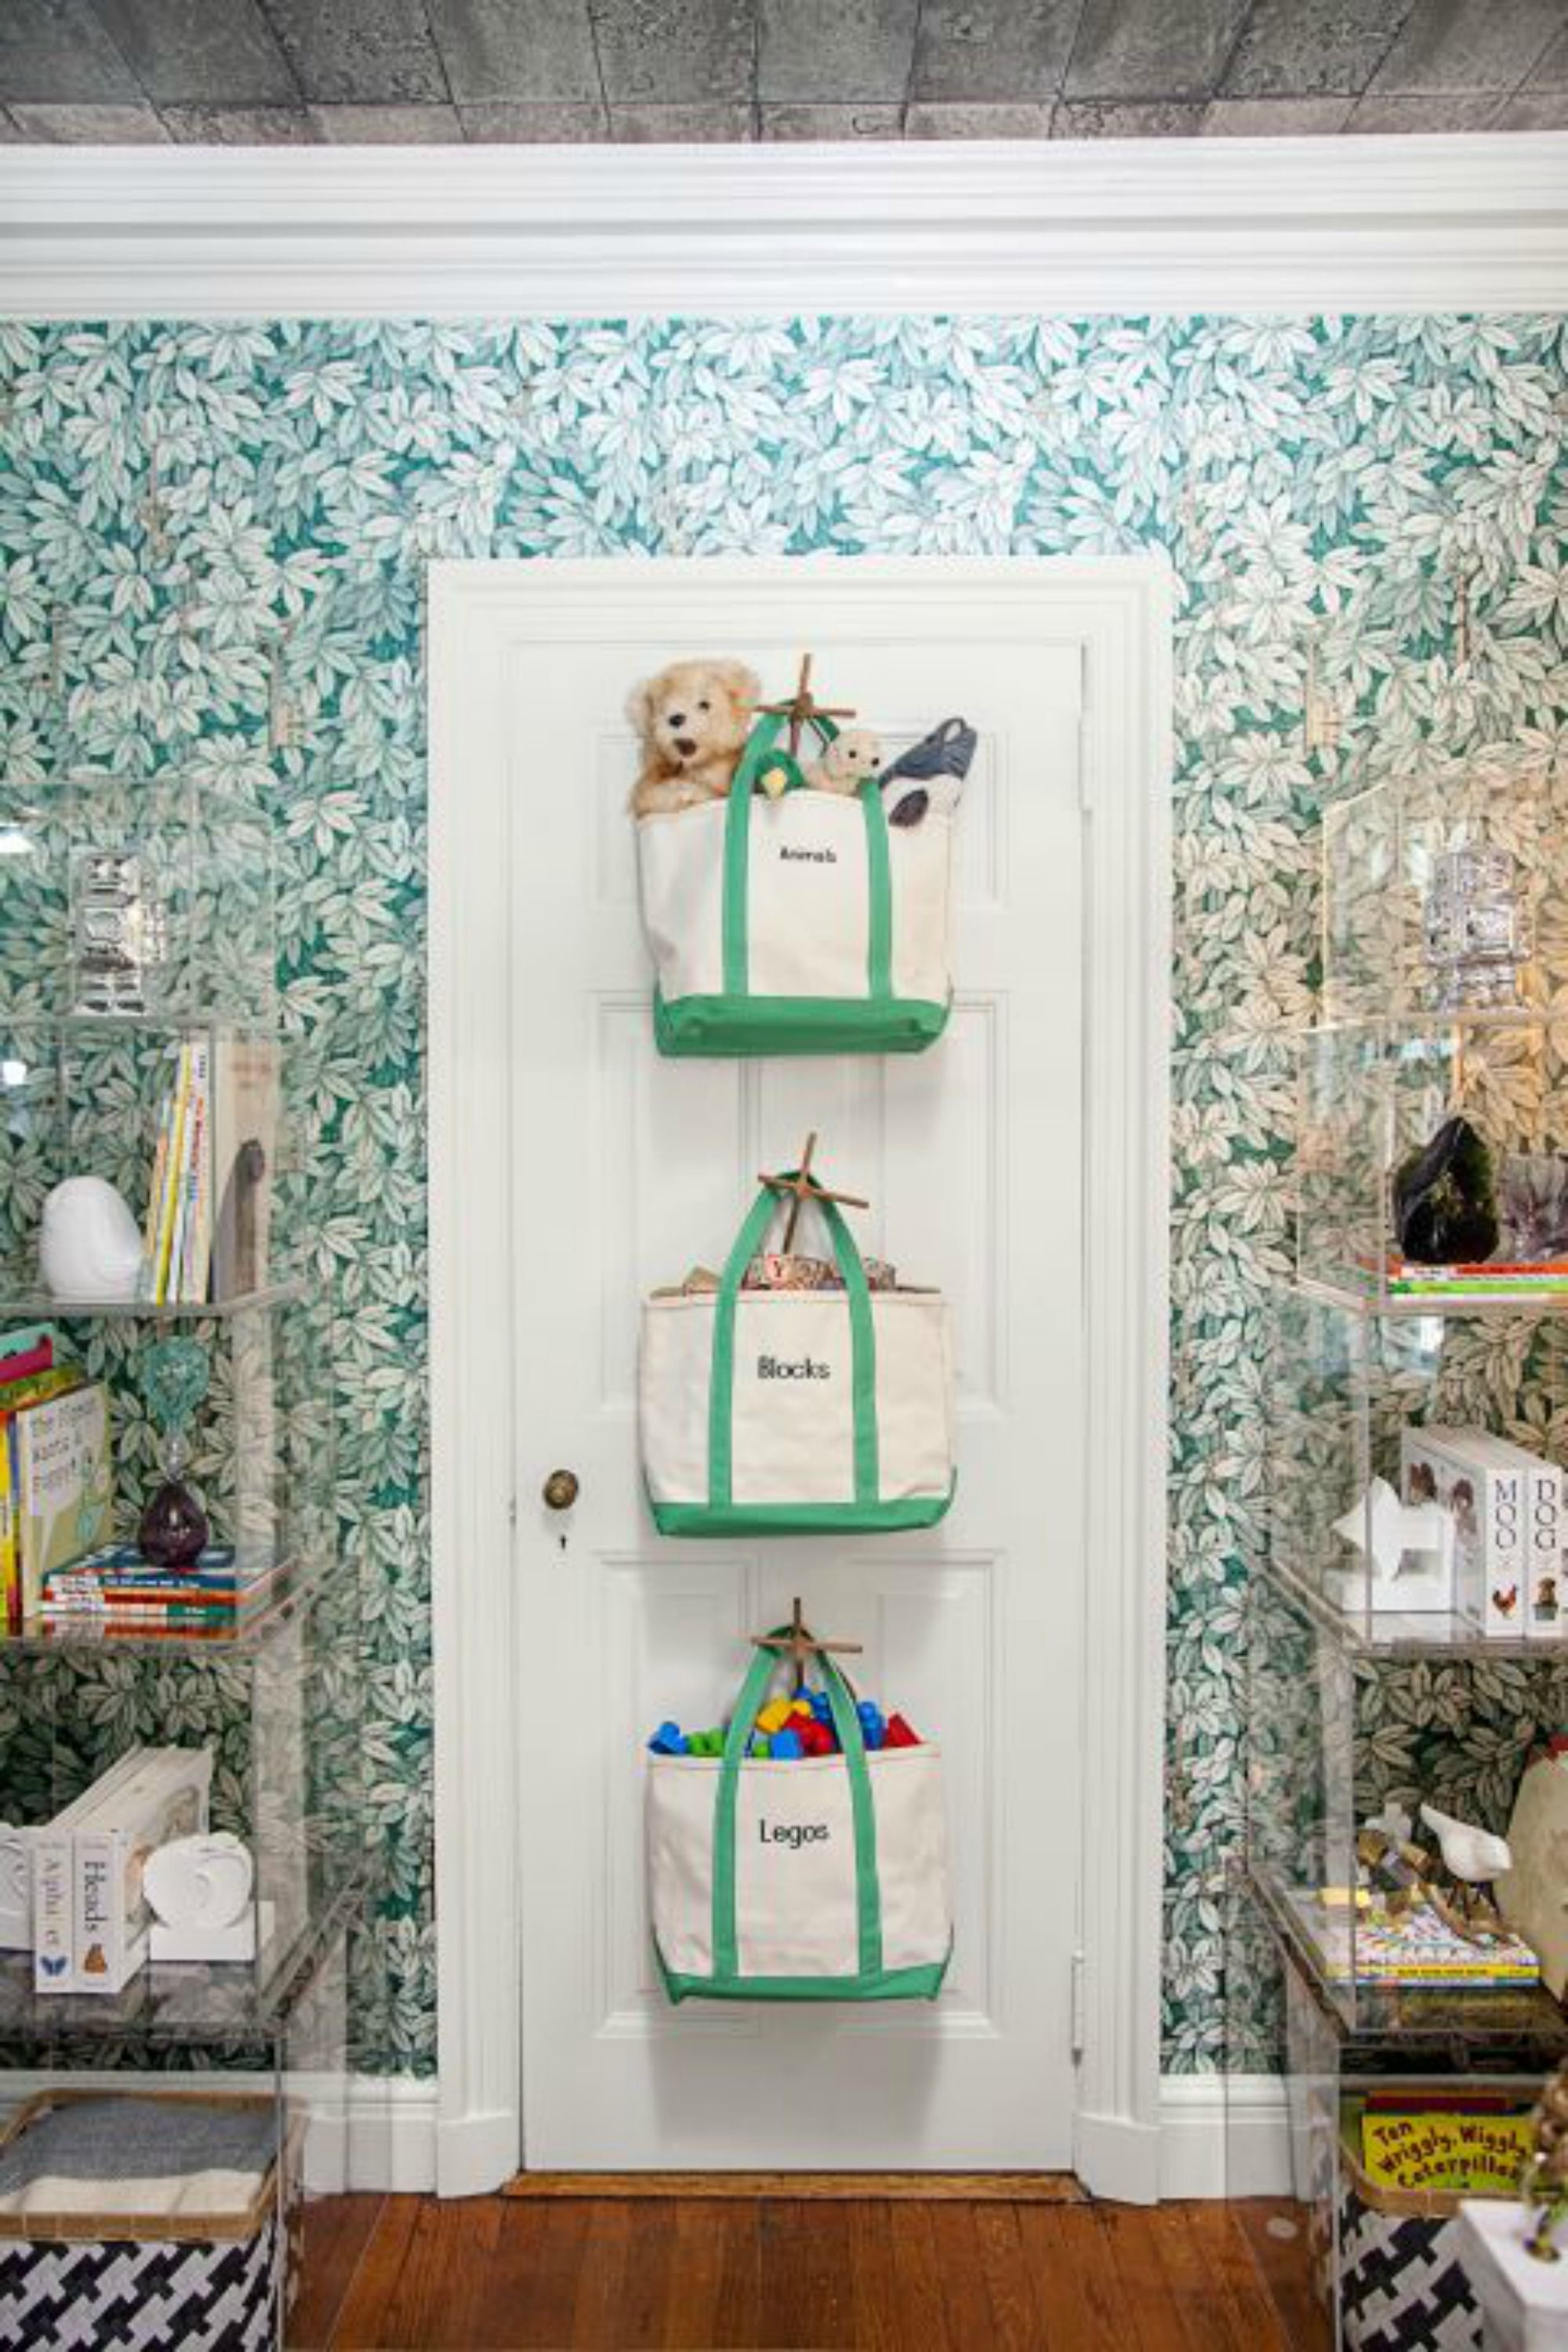 100 Best Home Organization Hacks for Every Single Room in Your House ...